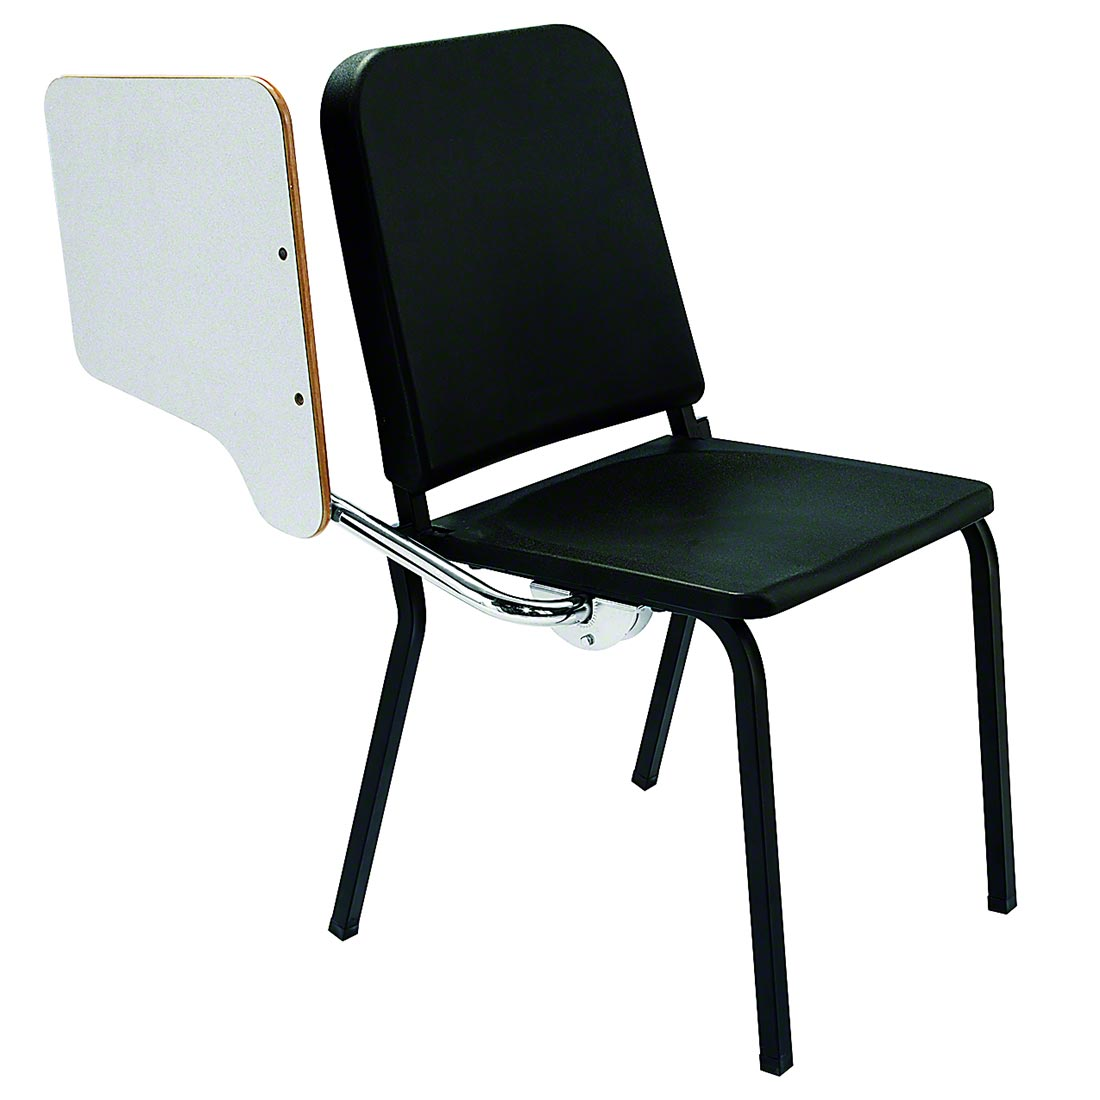 public seating chairs china mall chair covers national 8210 melody stack with